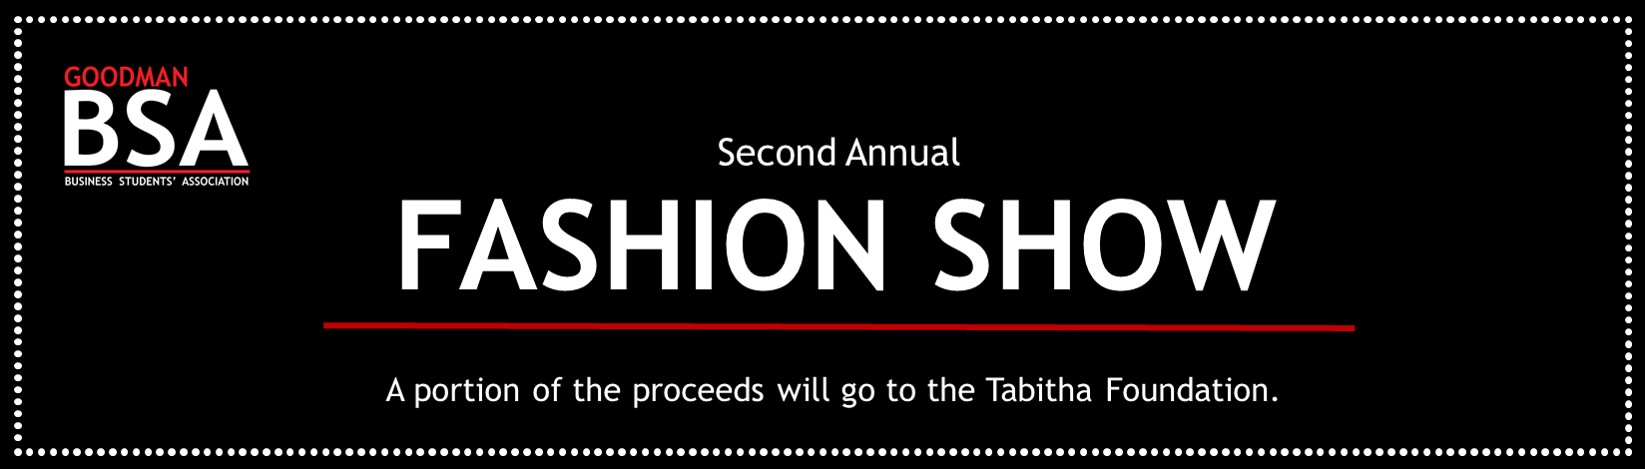 Goodman Business Students' Association's Second Annual Fashion Show